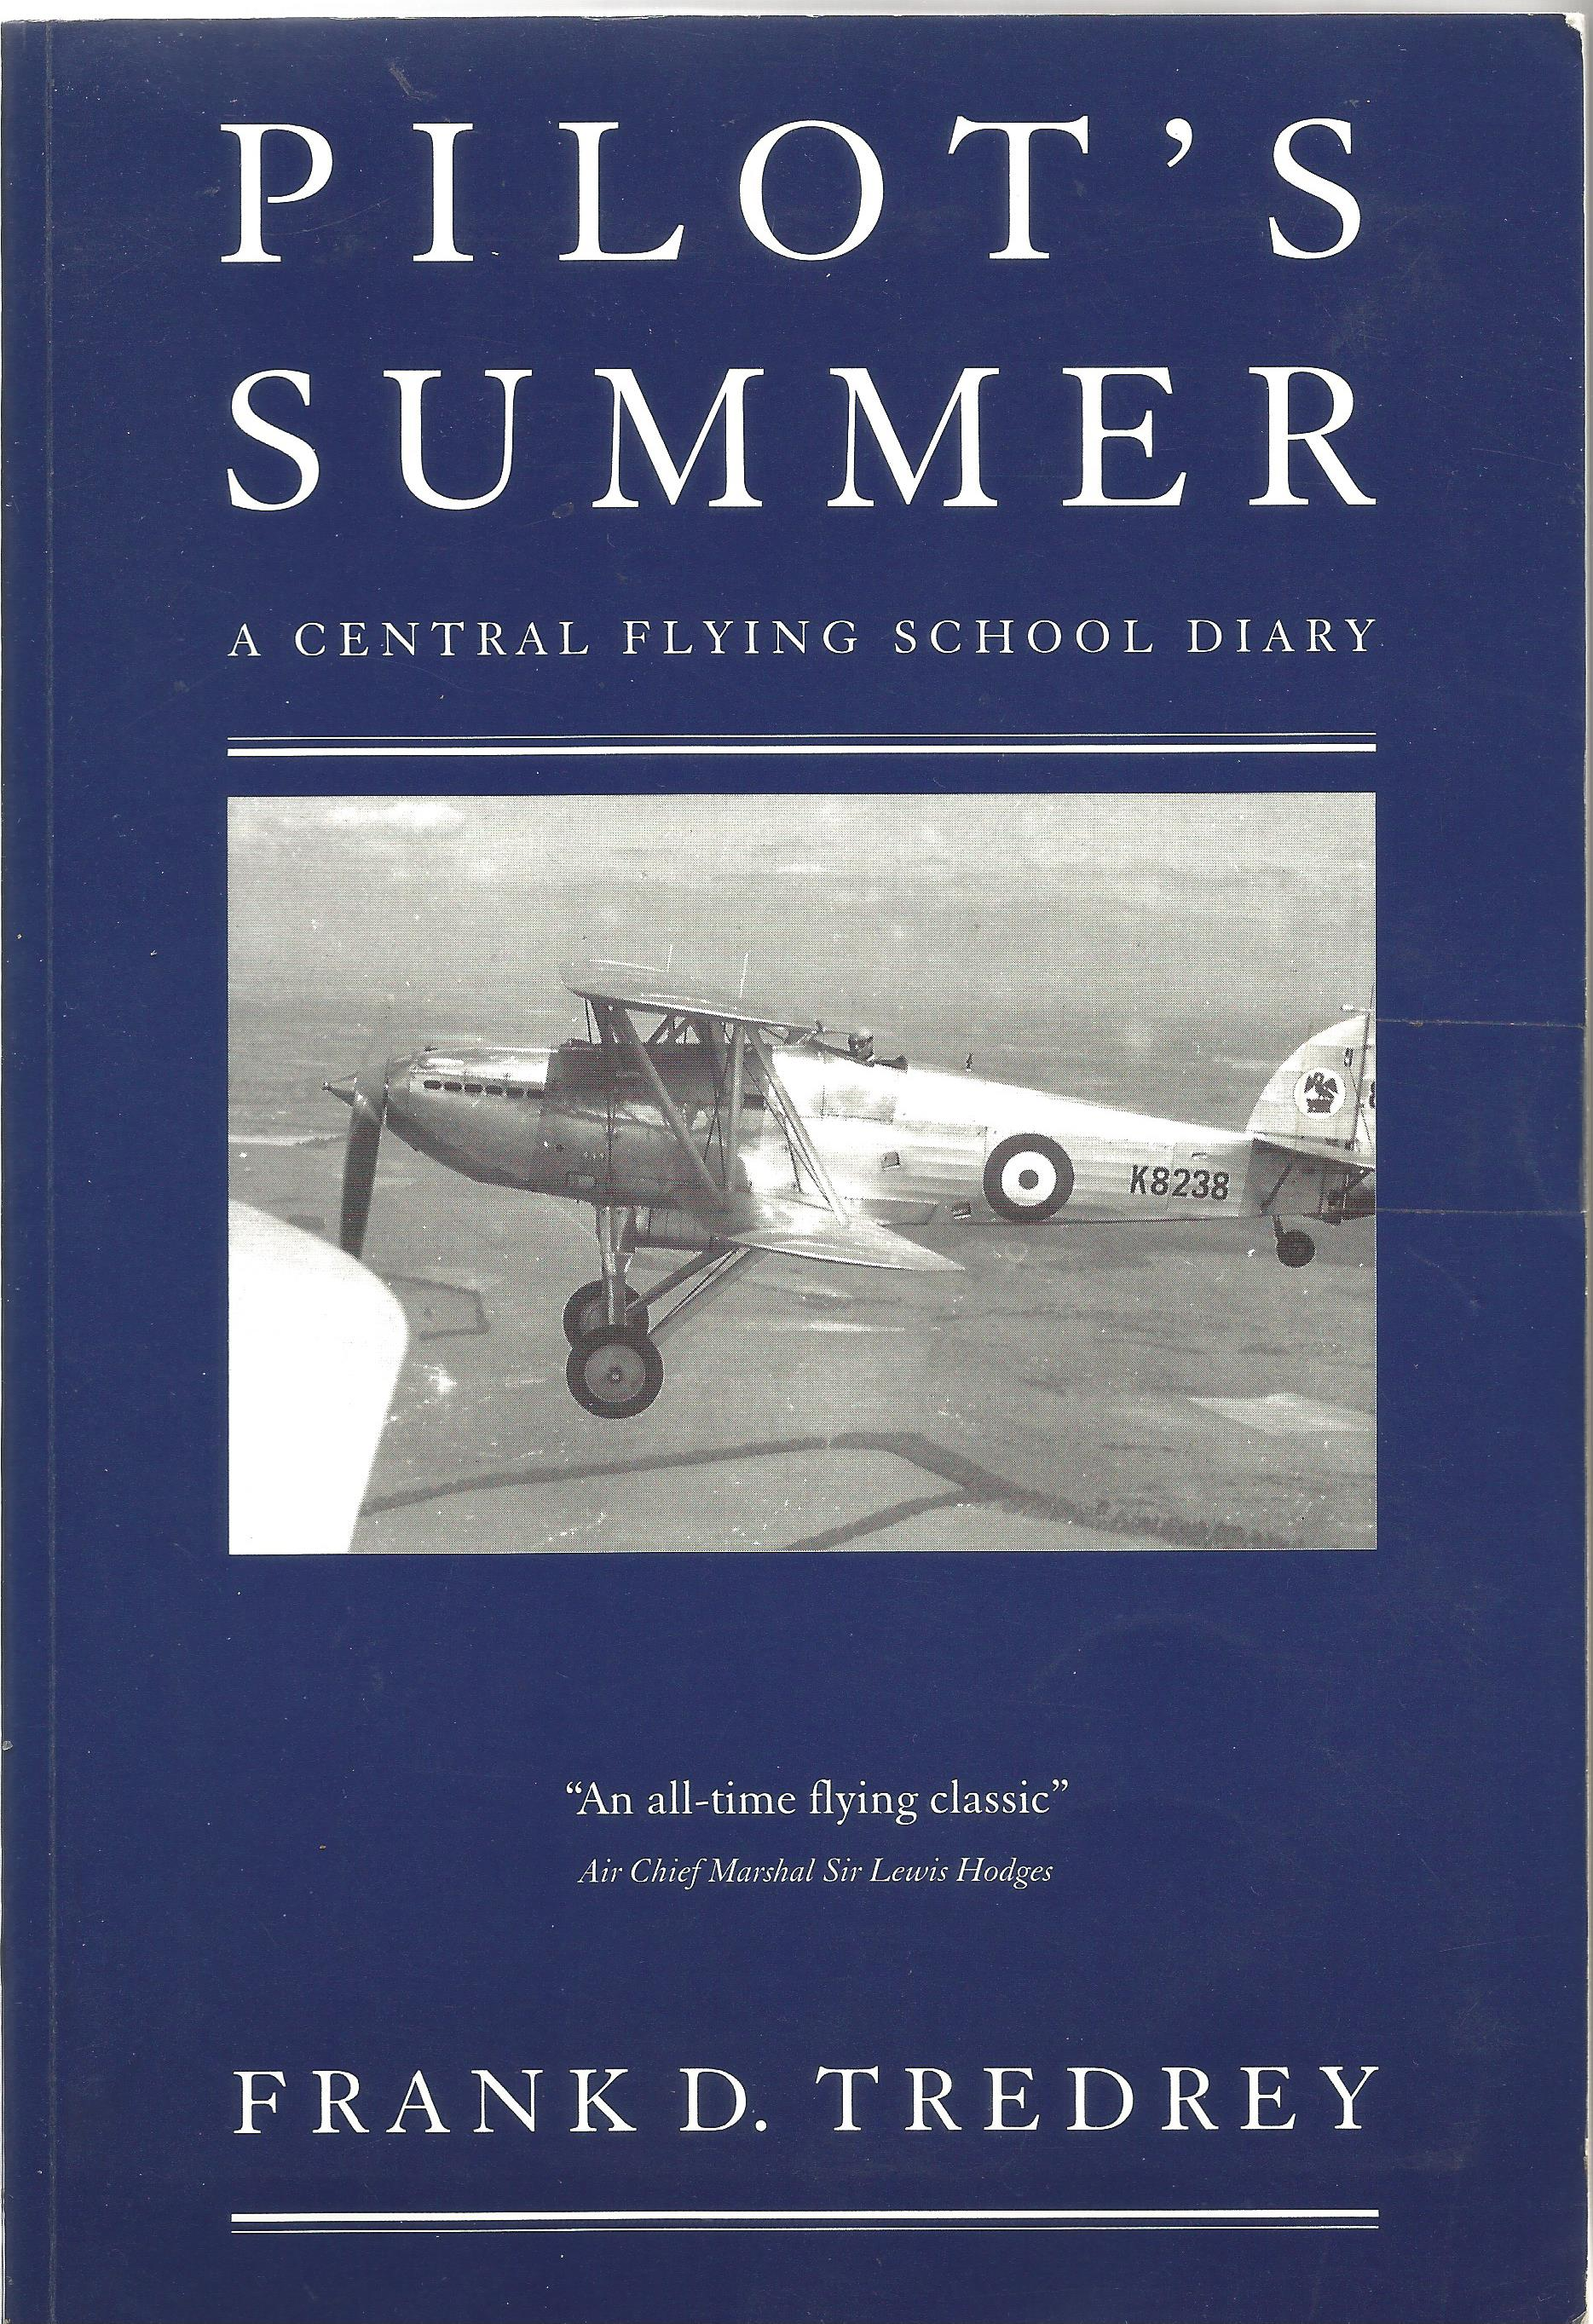 Frank D Tredrey. Pilots Summer A Central Flying School Diary. A Paperback book, spine in good - Image 4 of 4